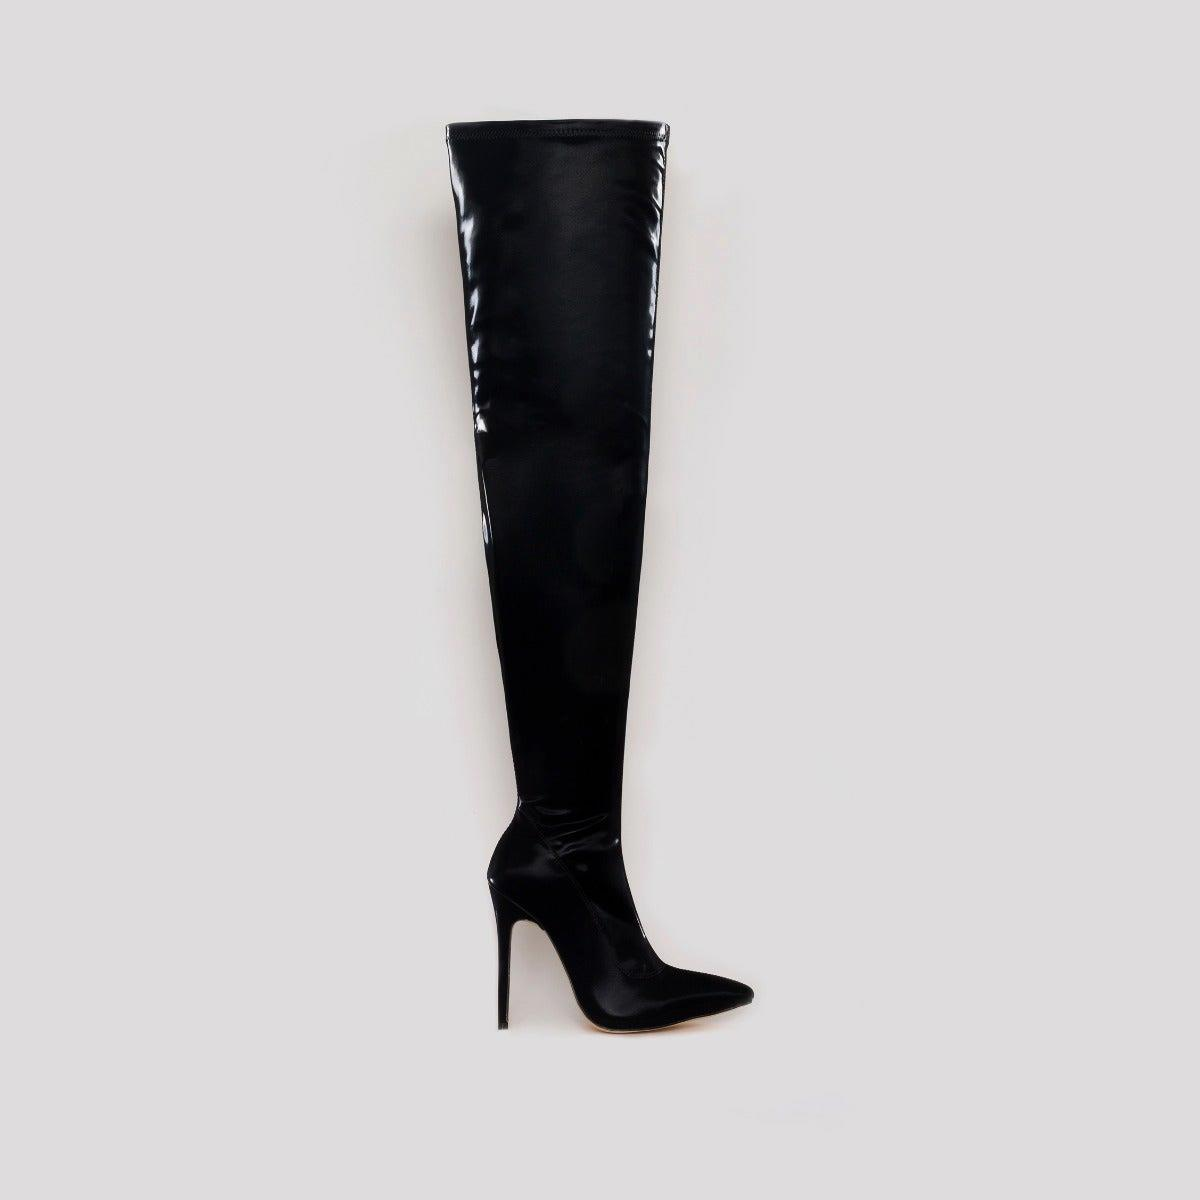 Isabel Black Shine Thigh High Stiletto Boots